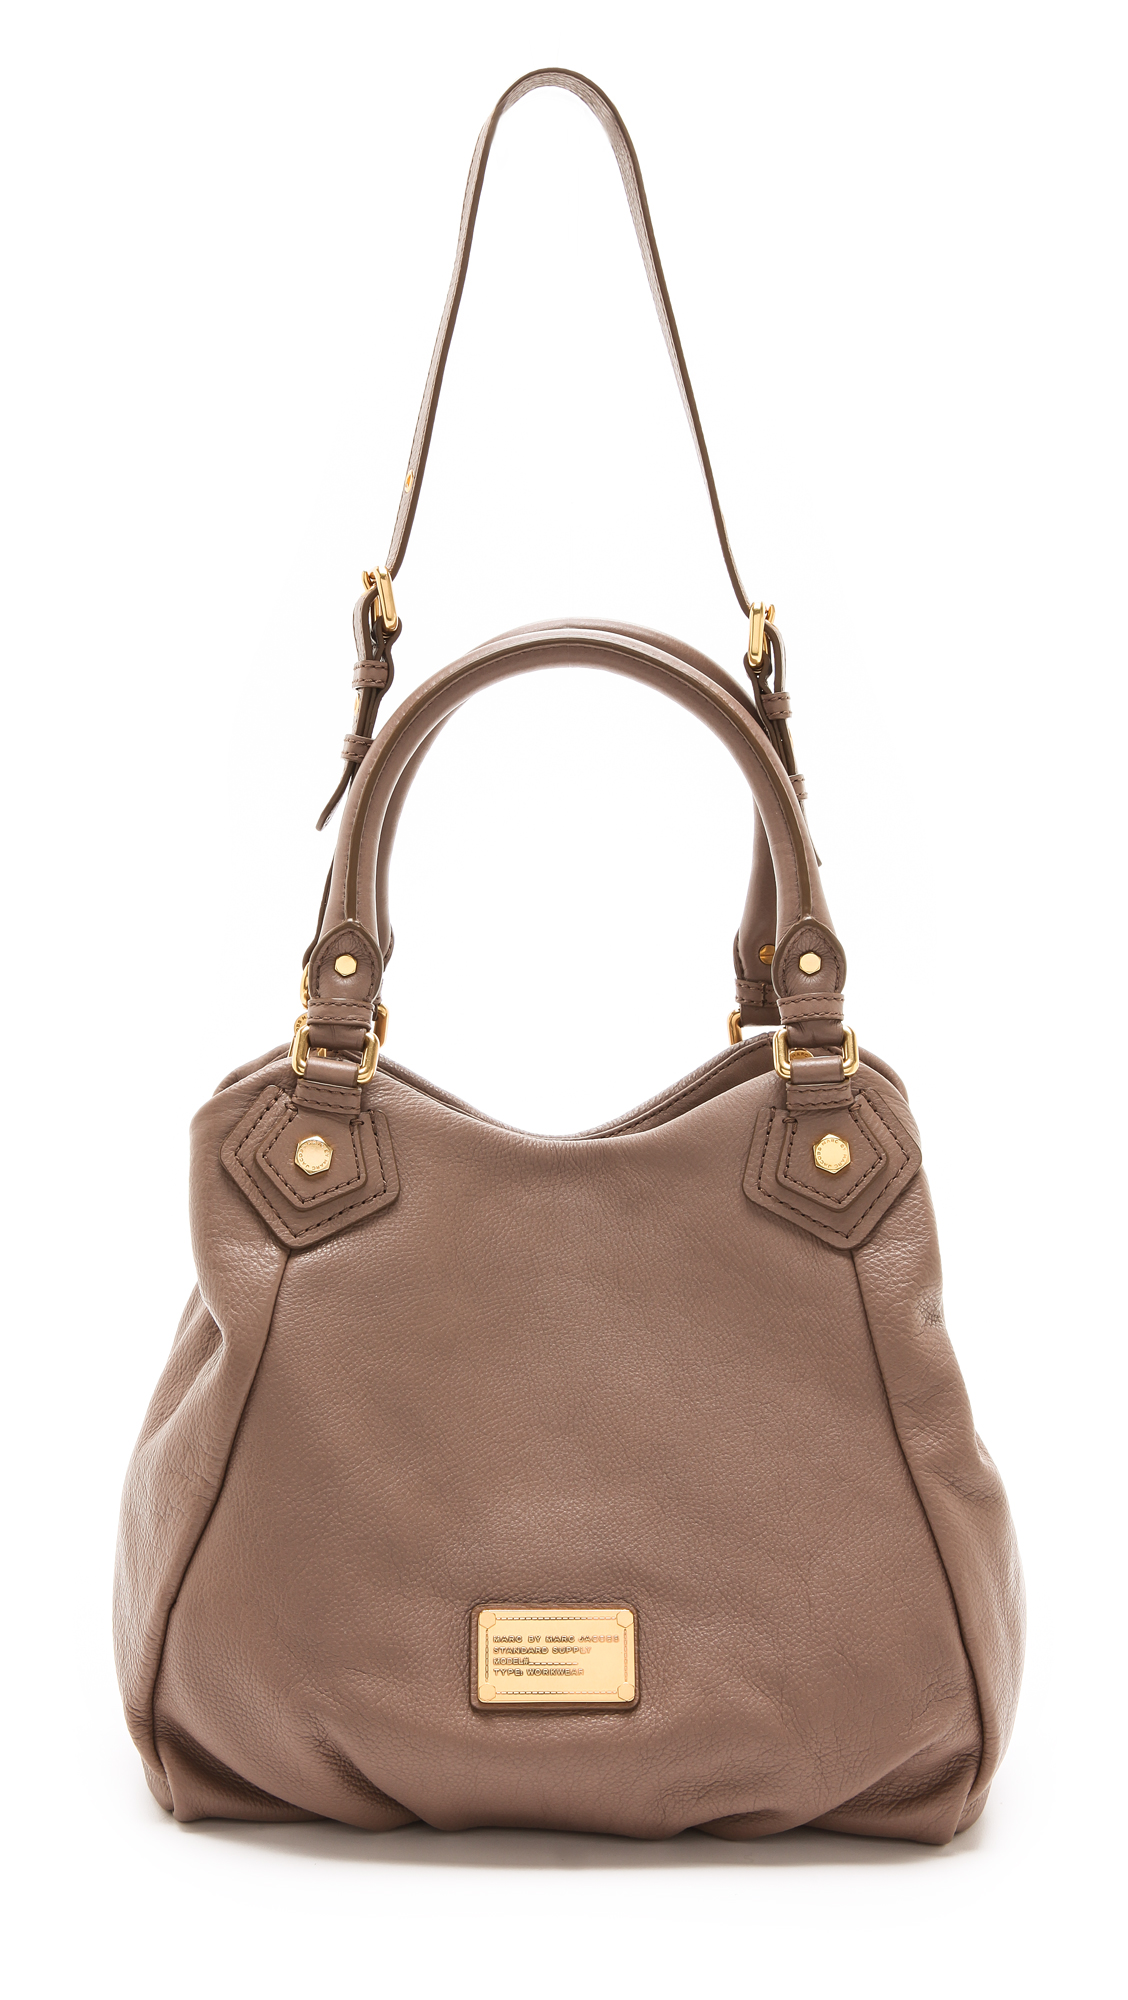 Marc by marc jacobs Classic Q Fran Bag in Natural